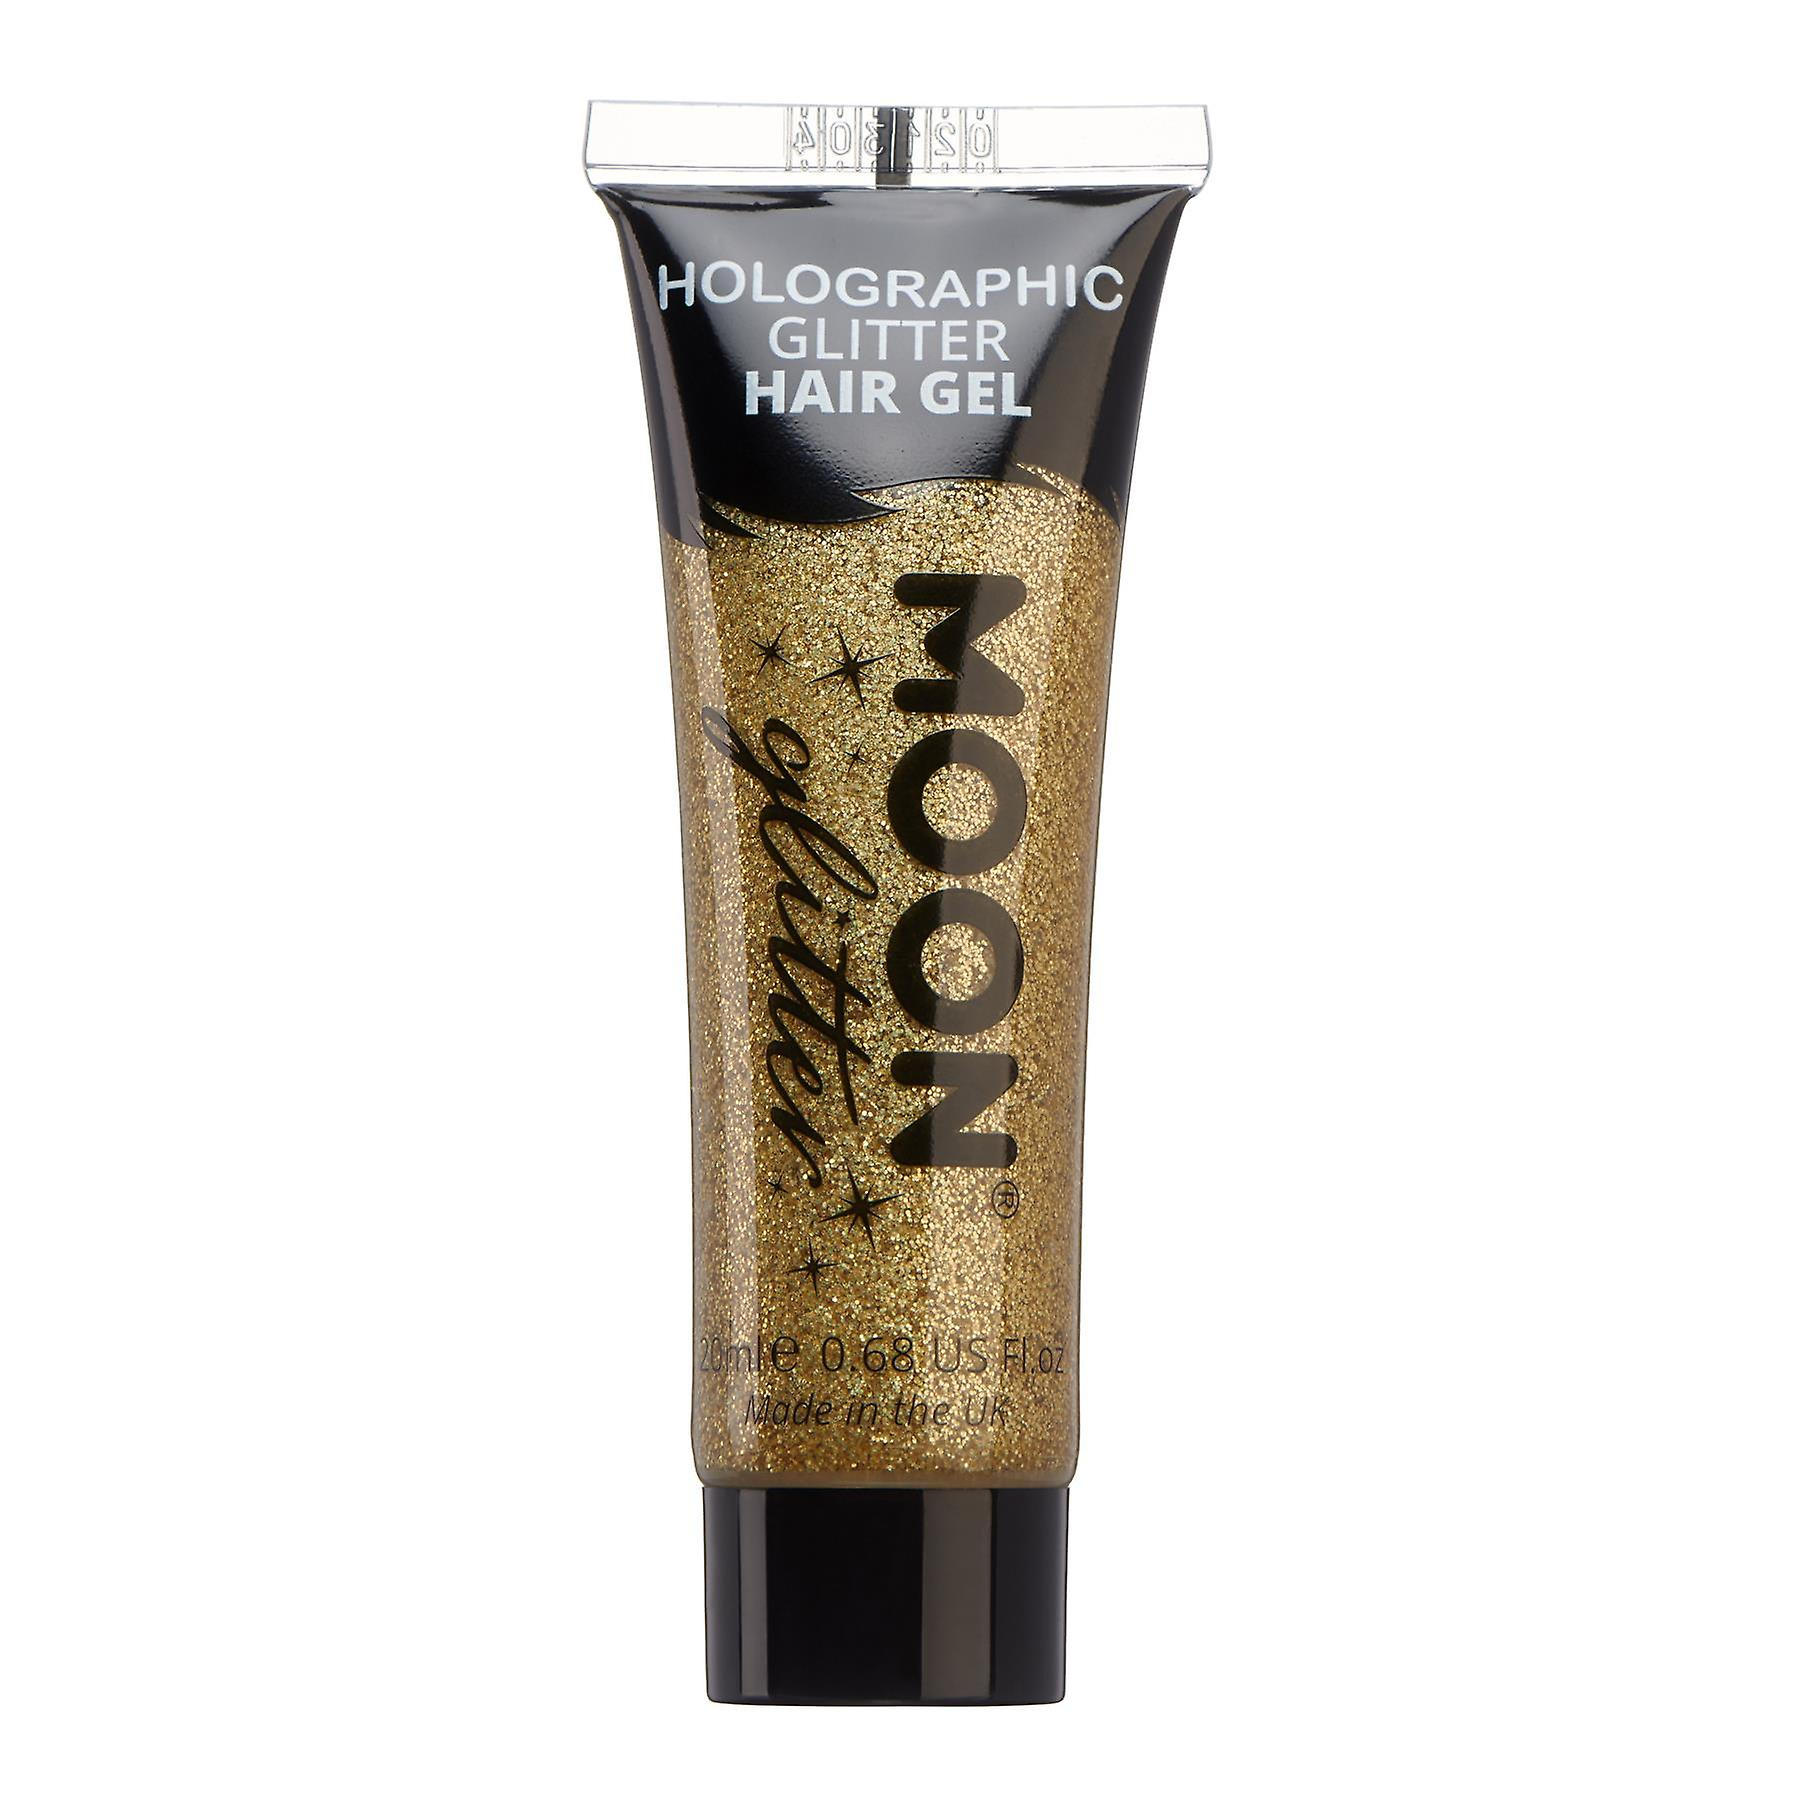 Holographic Glitter Hair Gel by Moon Glitter - 20ml - Gold